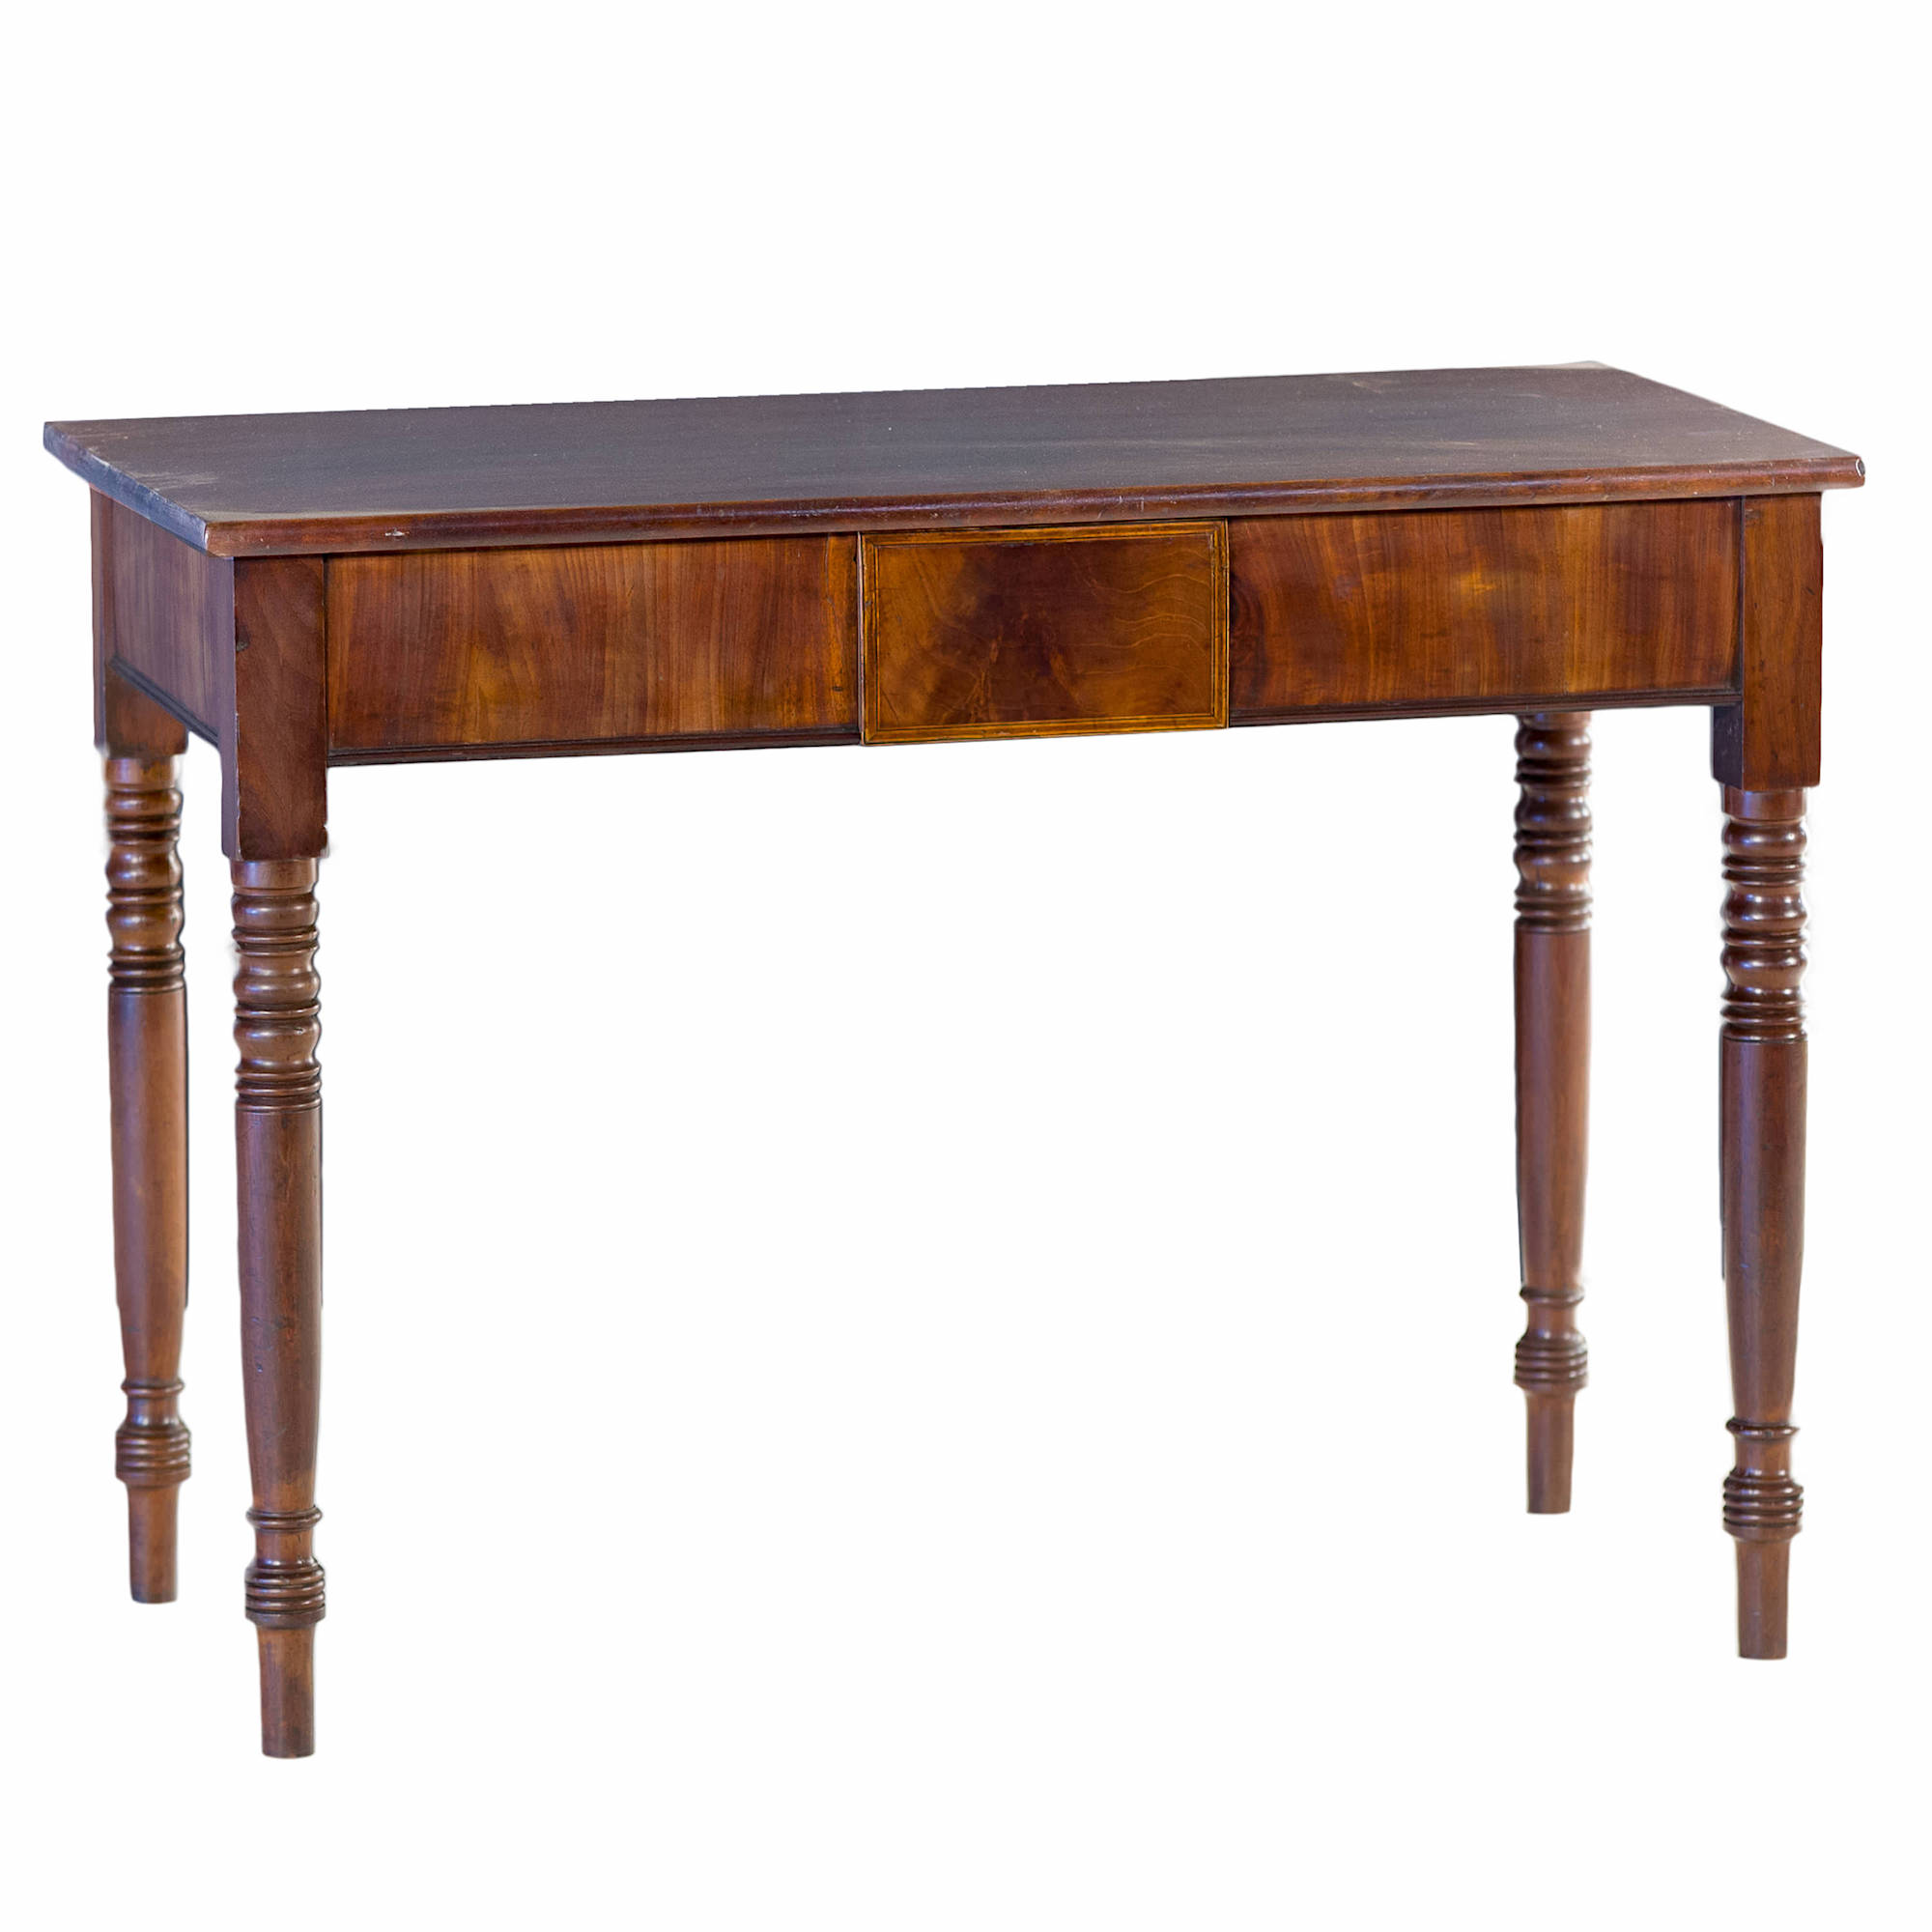 'George IV Mahogany Side Table with Ebony and Boxwood Strung Central Drawer Circa 1830'